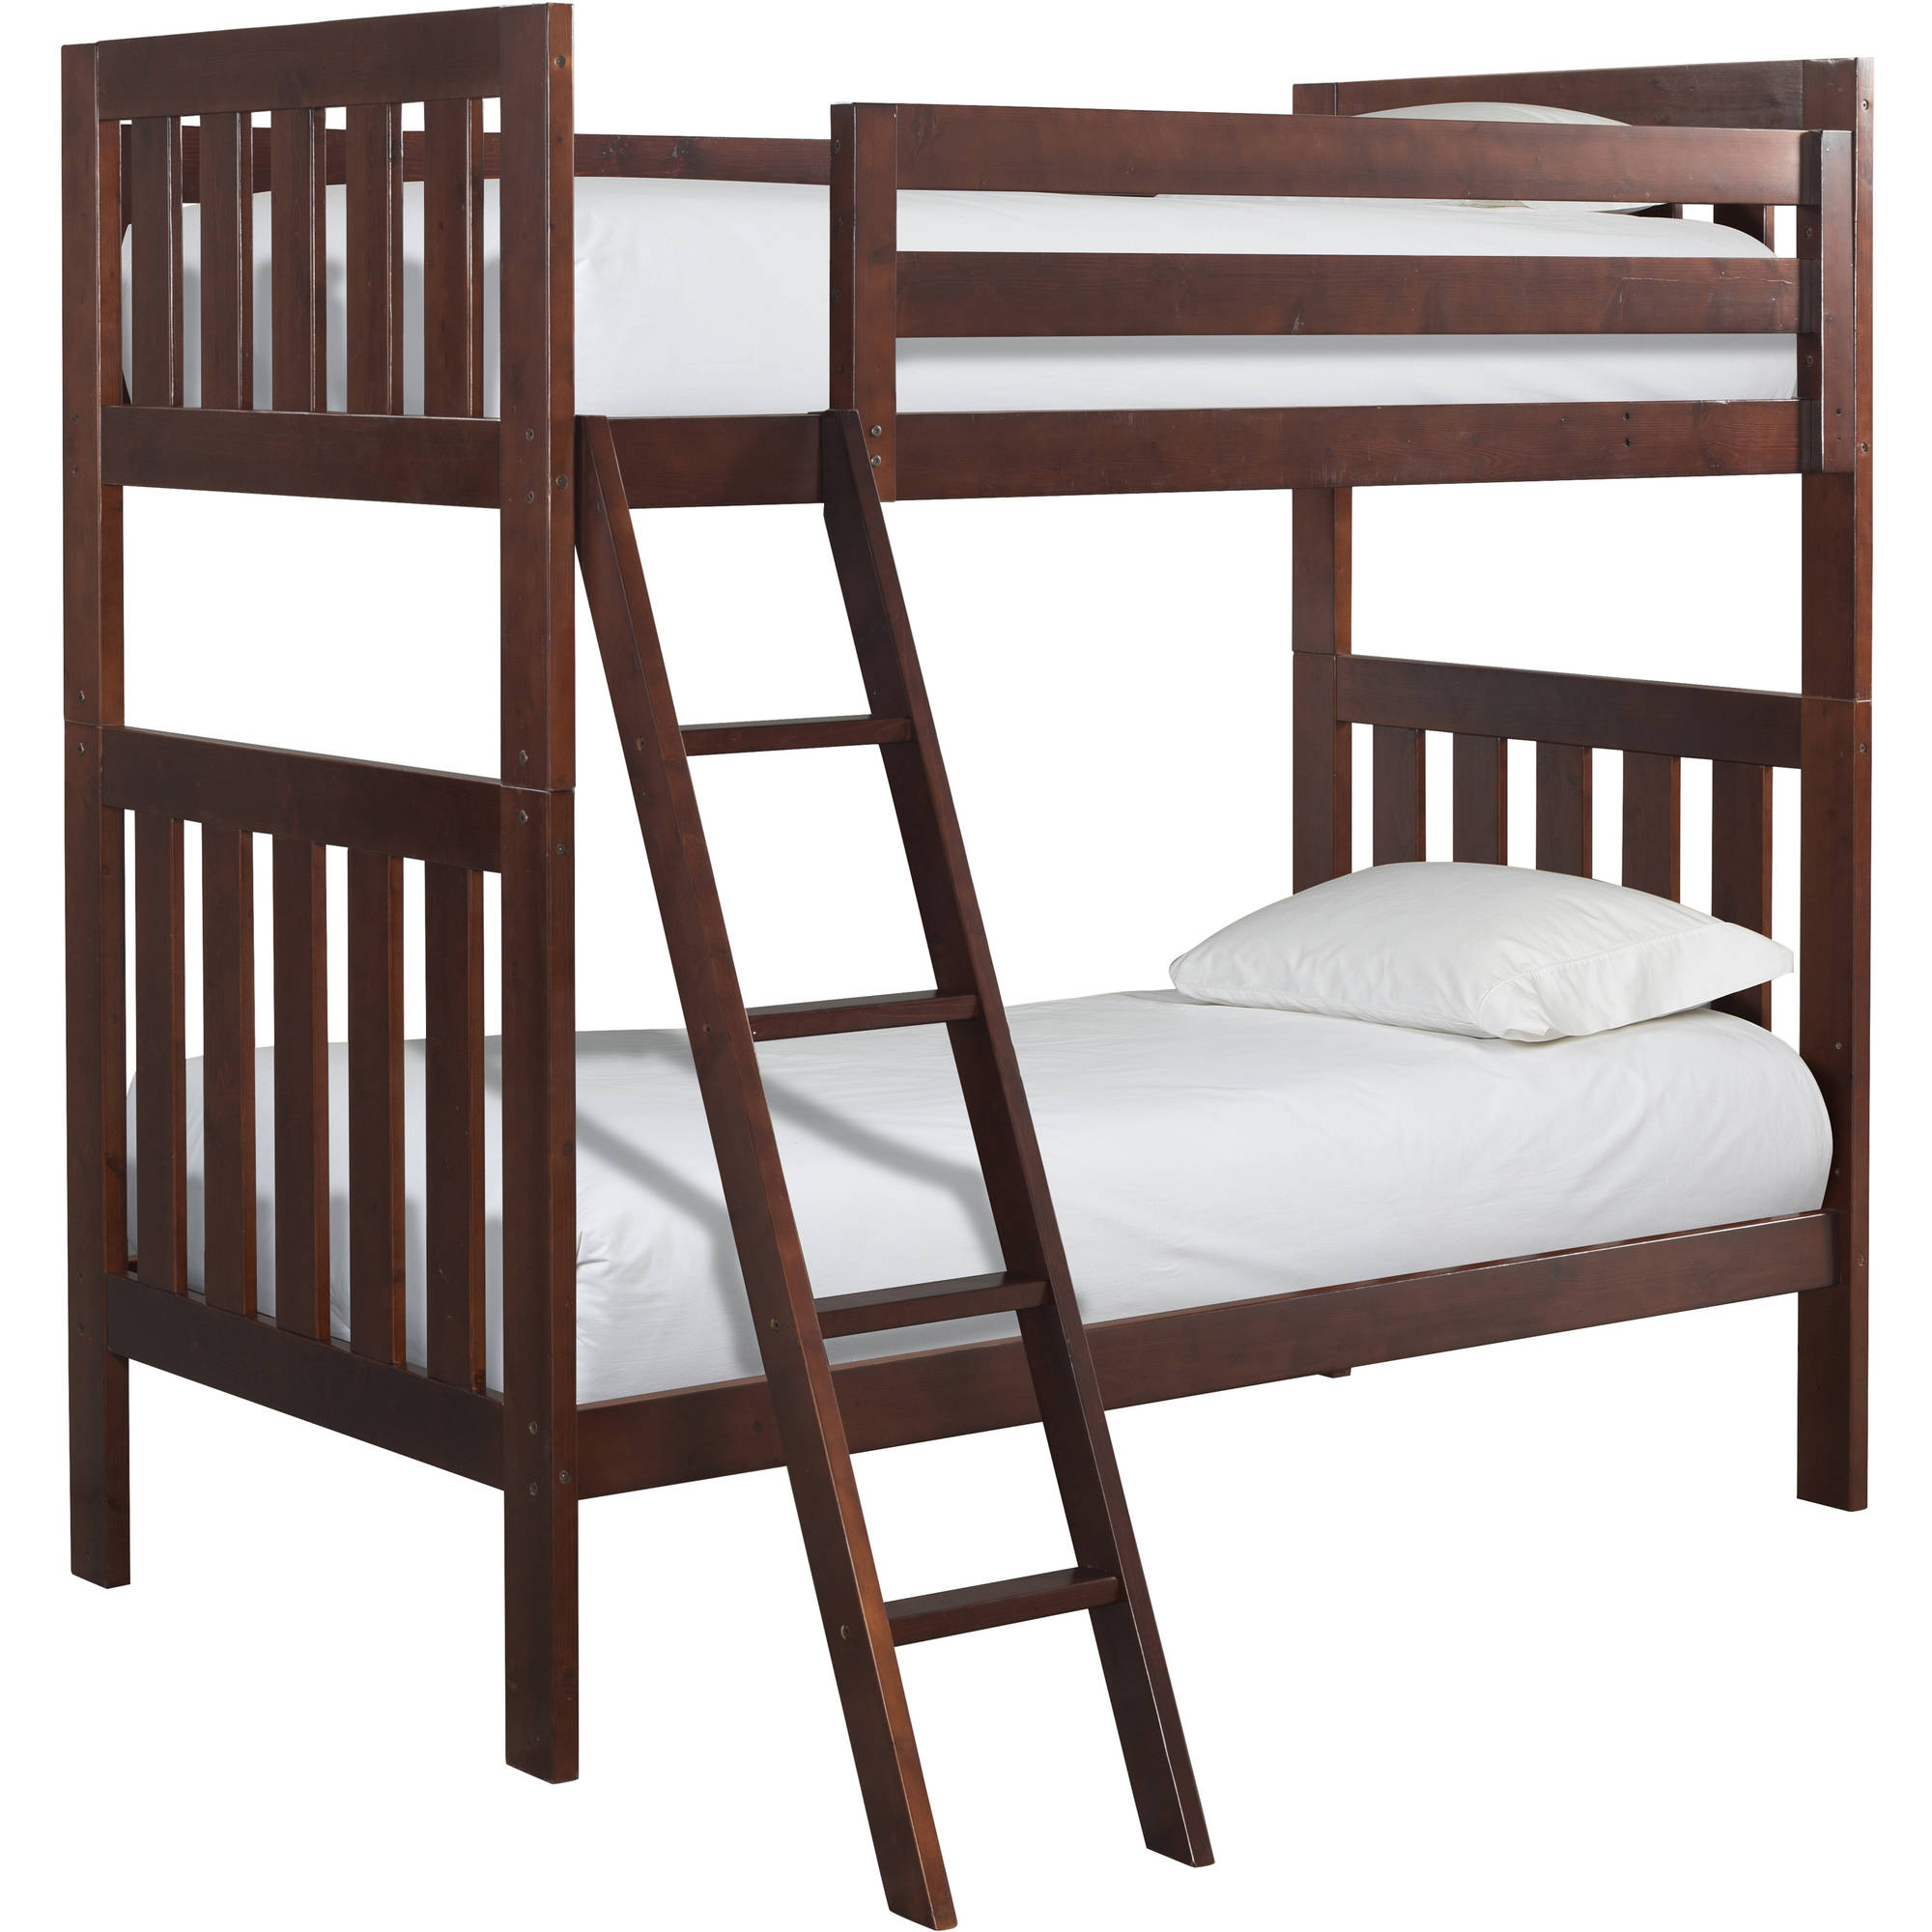 Canwood Lakecrest Twin Over Twin Bunk Bed, Cherry